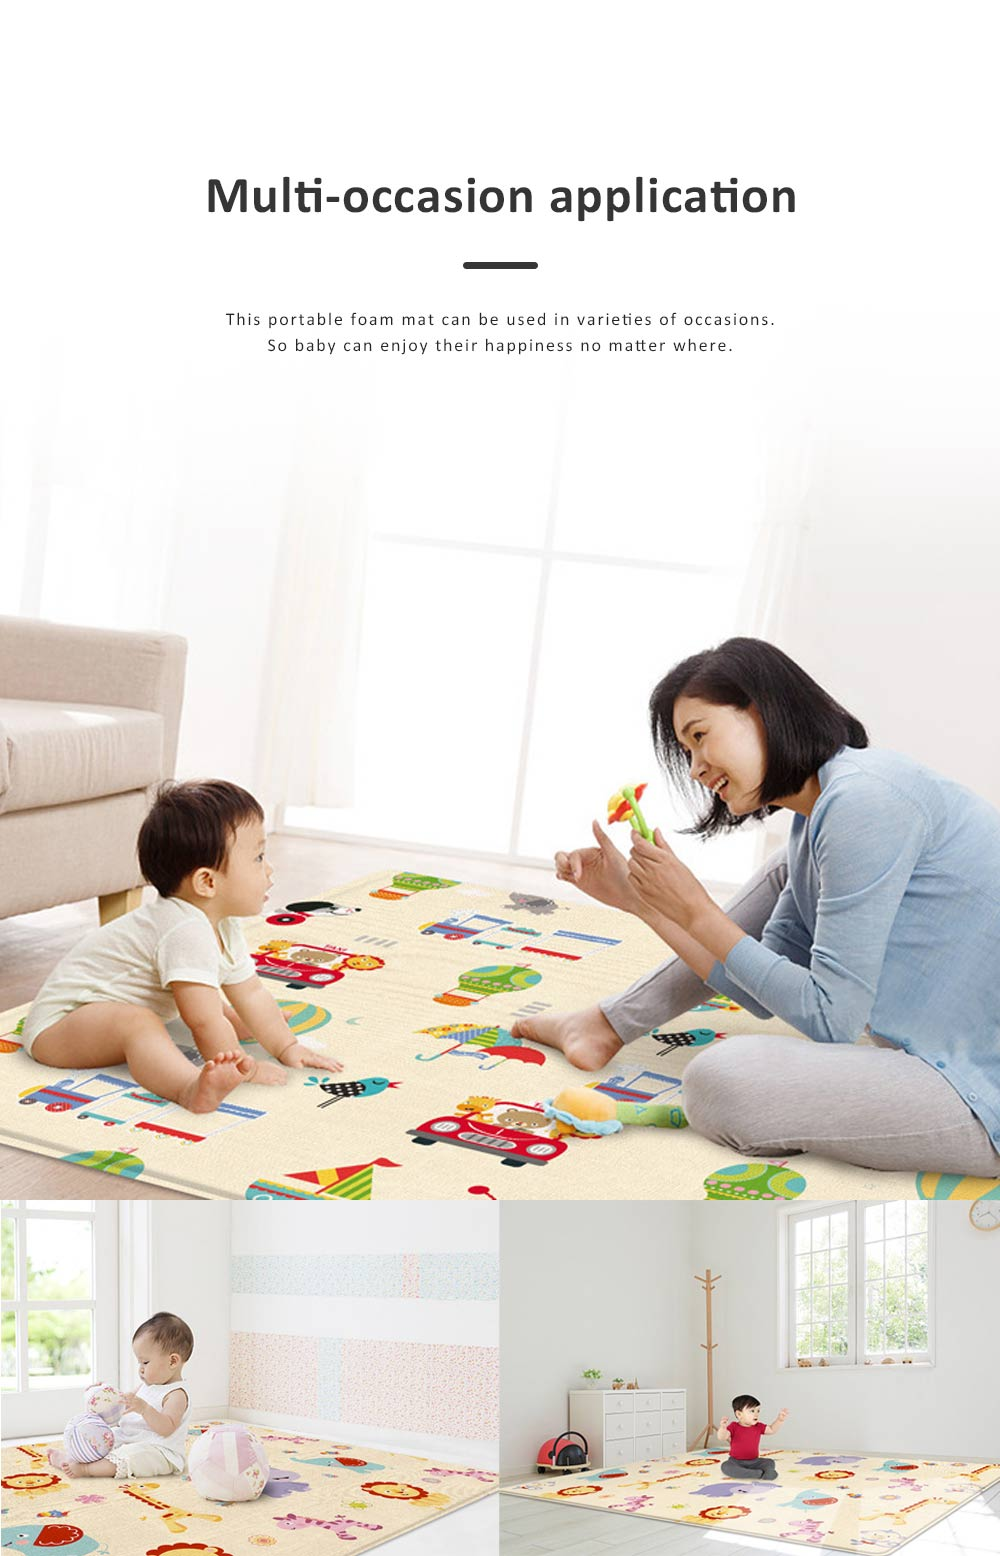 New Nontoxic Odorless LDPE Material Thicken Play Blanket for Baby, Cute Pattern Floor Crawling Mat Indoor Outdoor 7